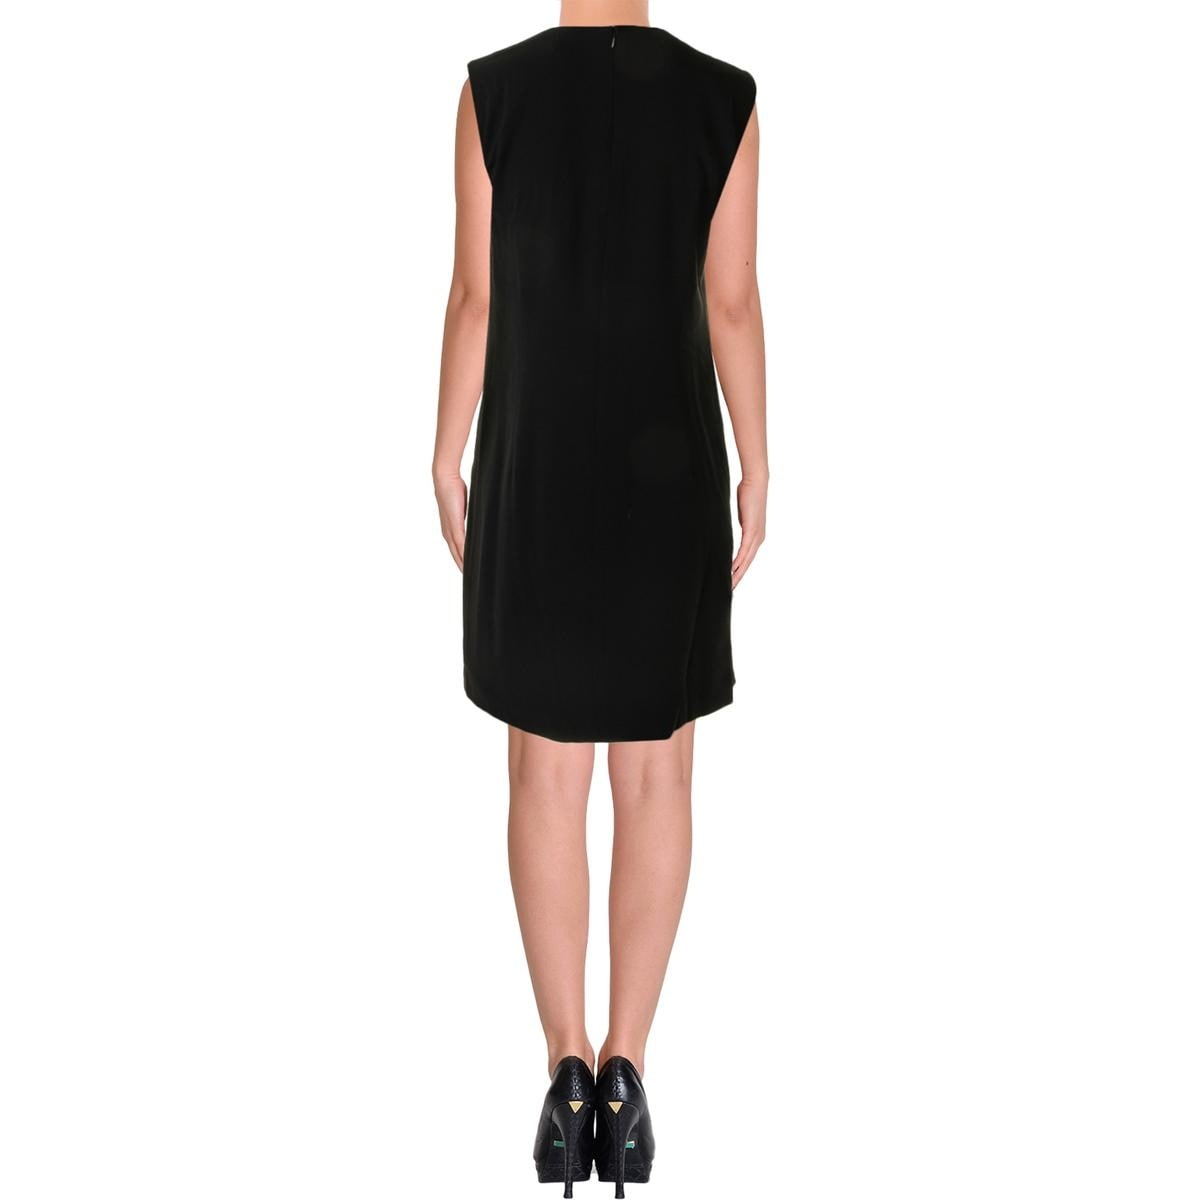 2dccfc084a Shop DKNY Womens Cocktail Dress Sleeveless Tuxedo - Free Shipping On Orders  Over  45 - Overstock - 14029552